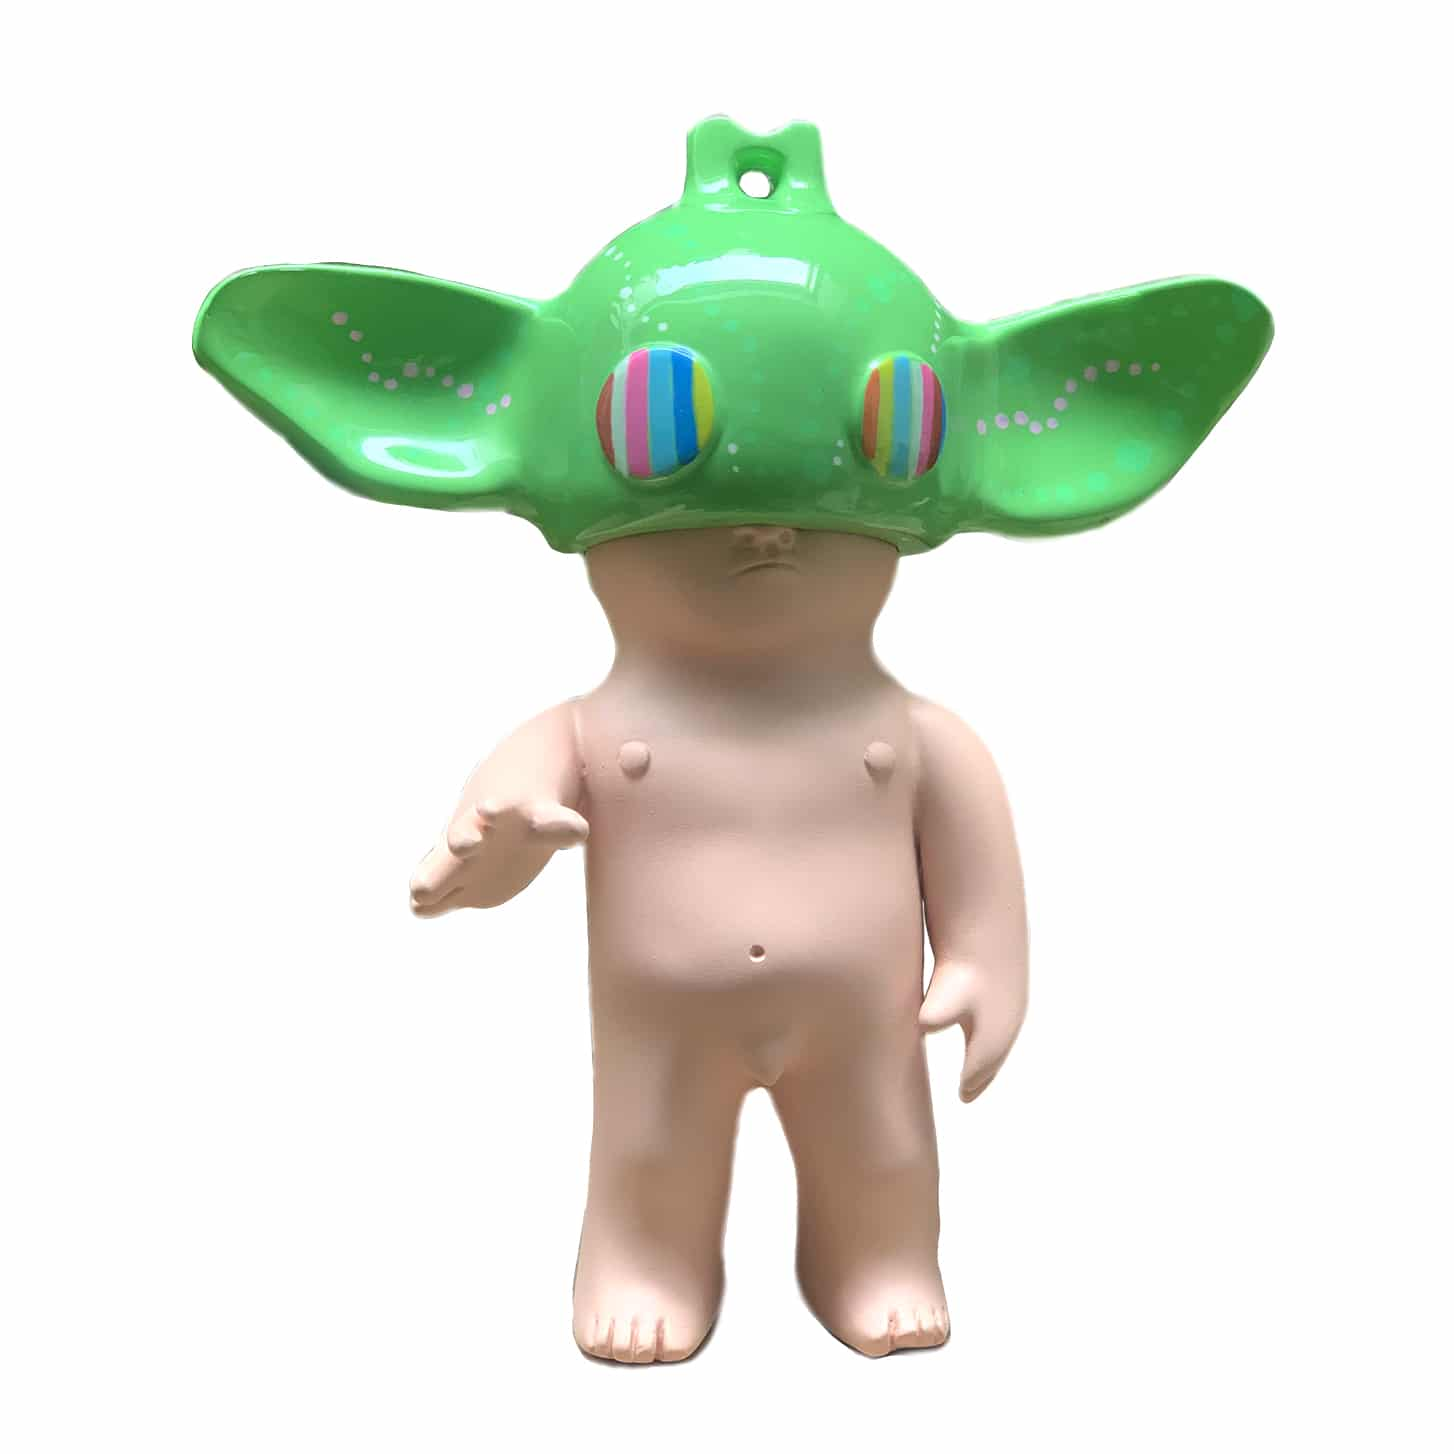 WAKO Yoda rainboy limited edition art toy